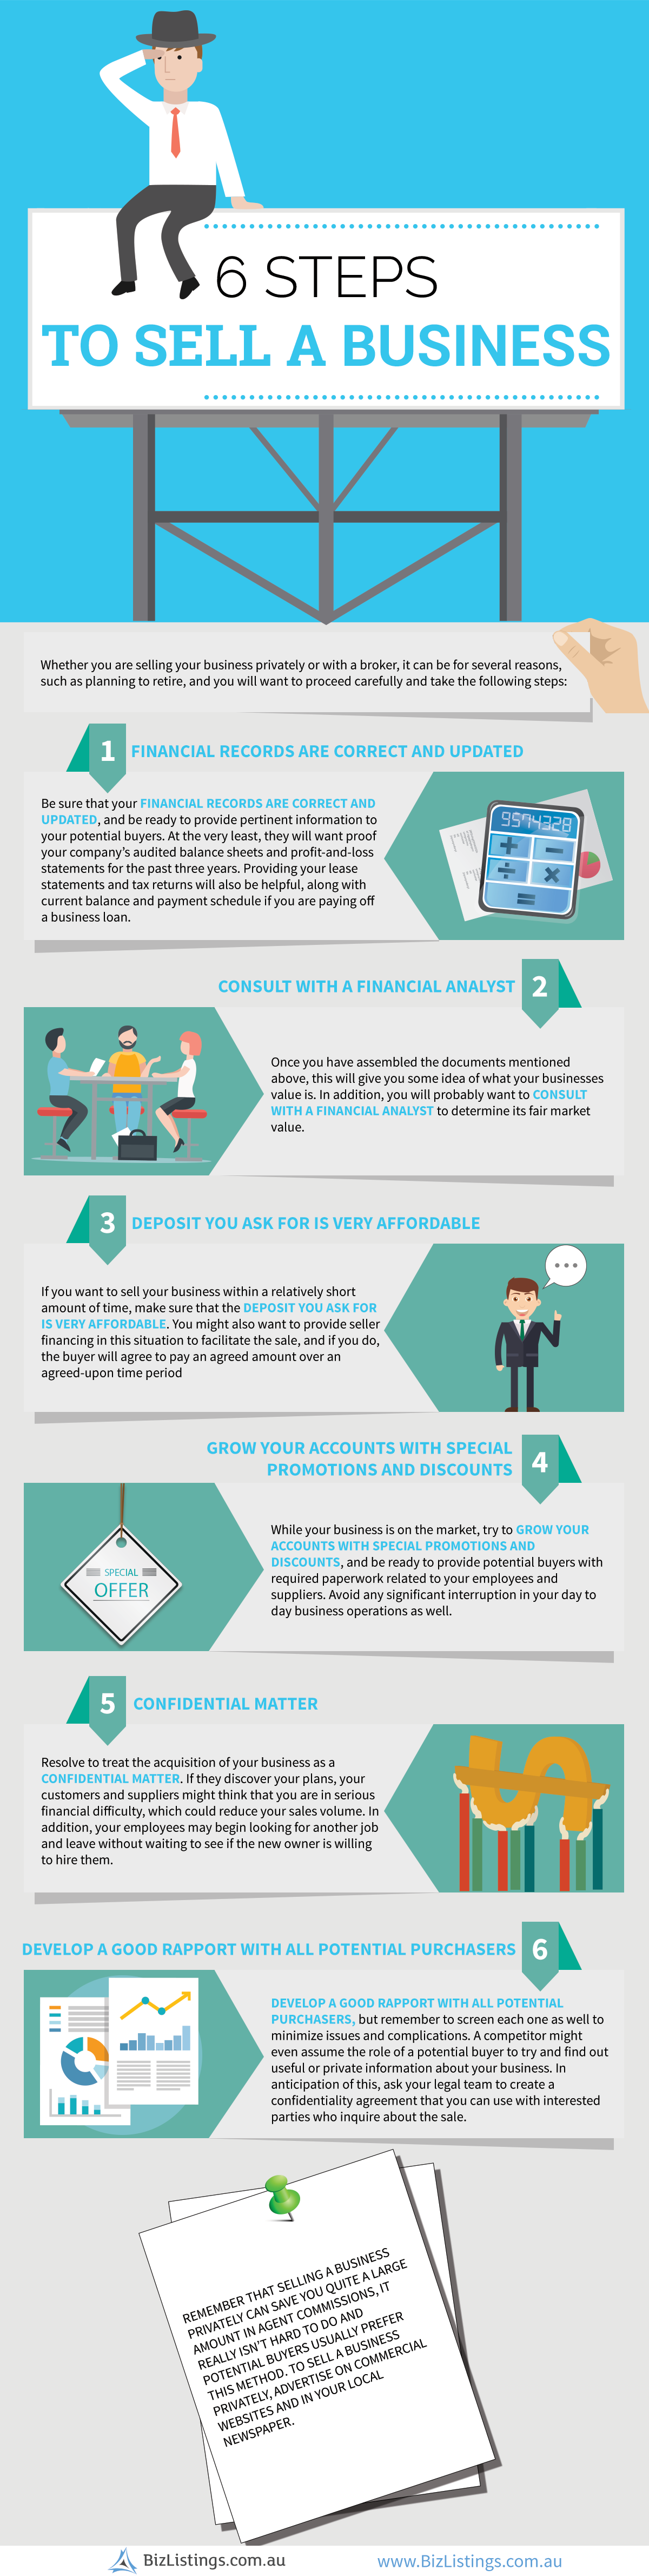 6 Steps to Sell a Business #infographic